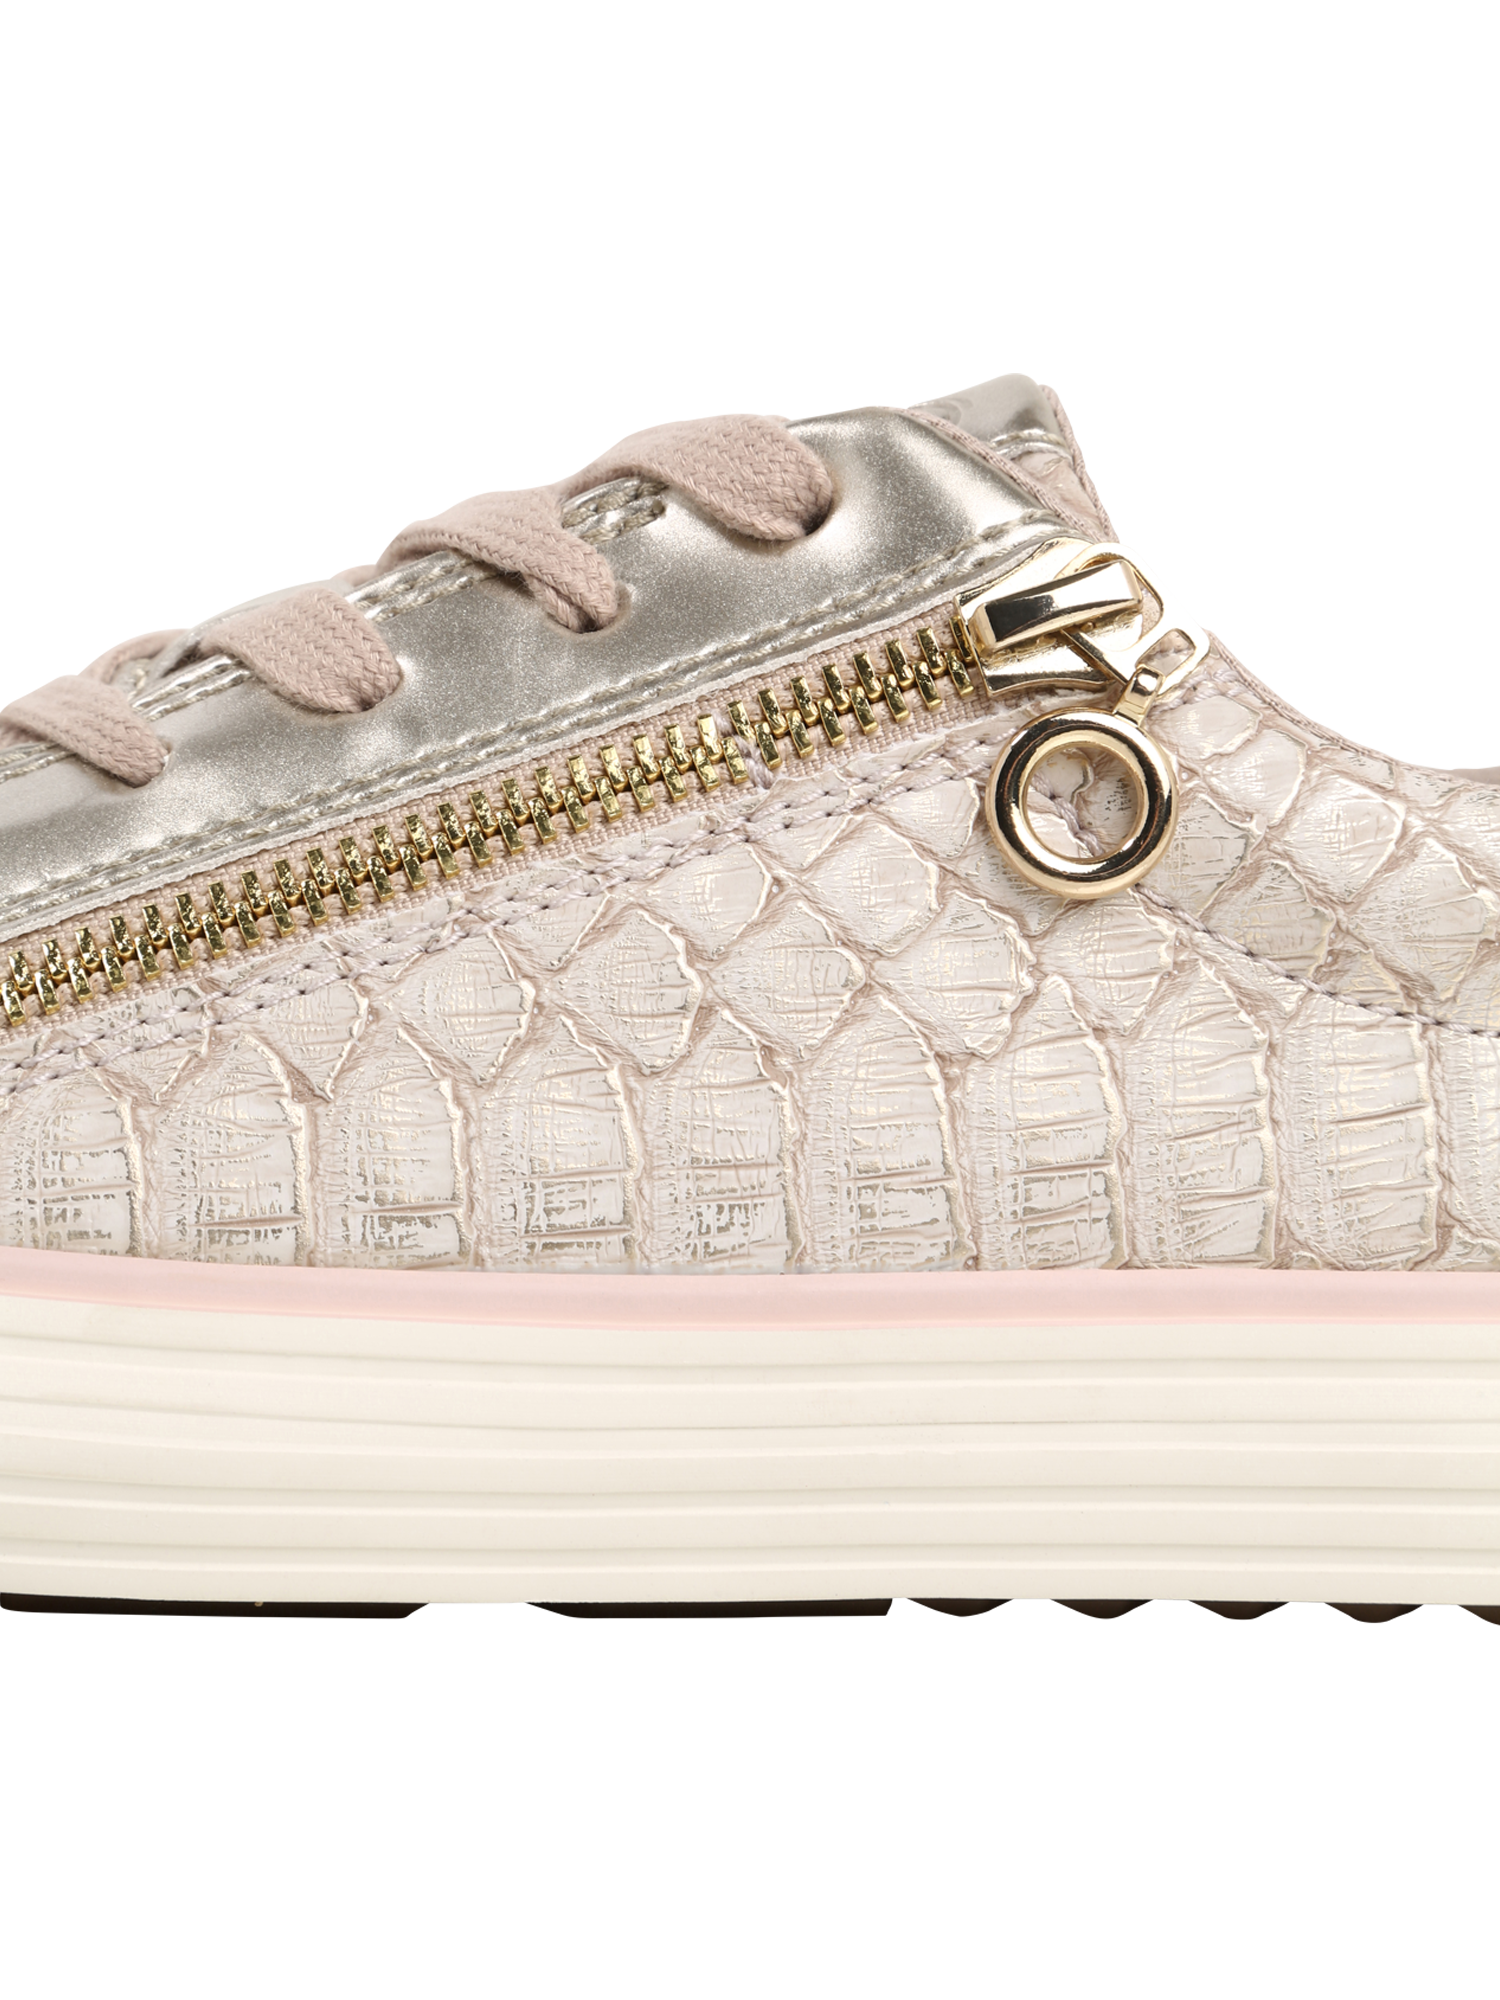 s.Oliver Sneakers laag in Rosa / Zilver hNujhOhH